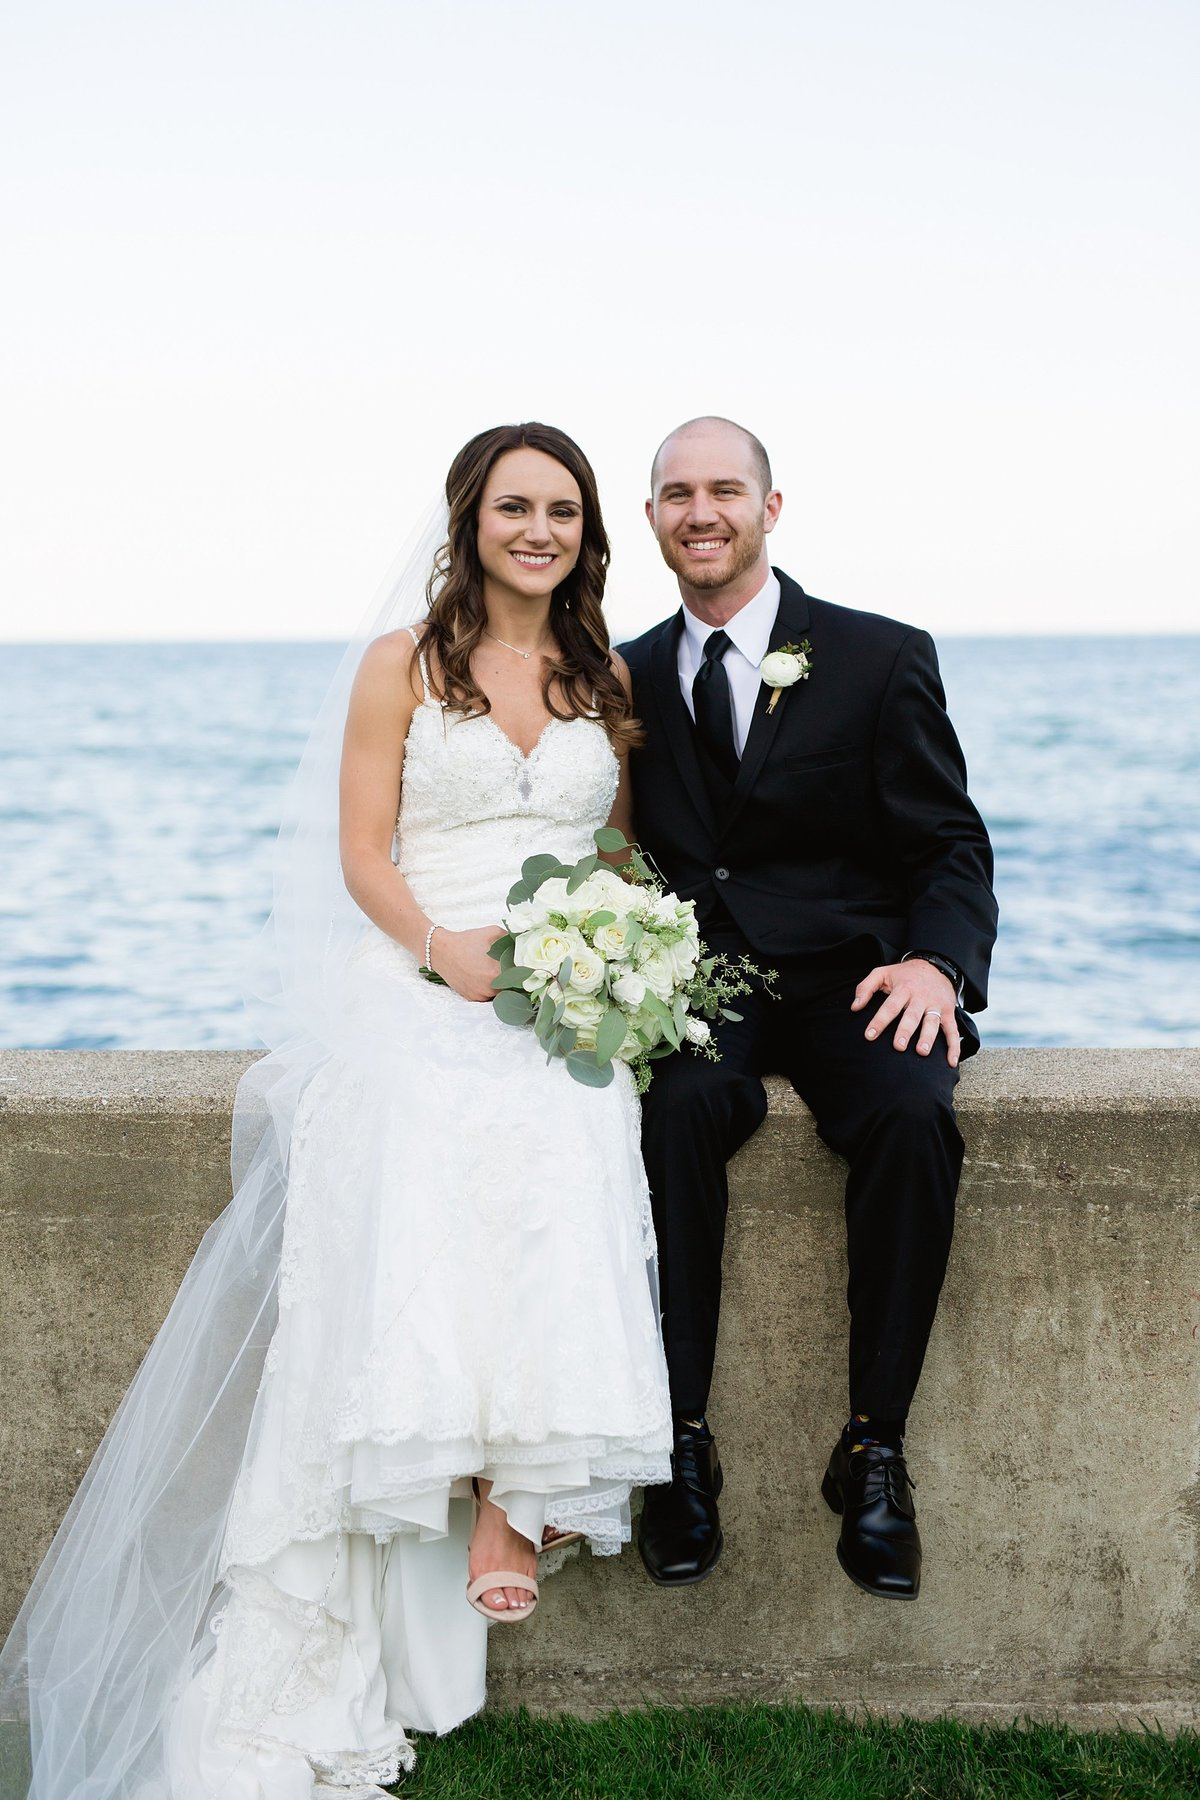 Shuster-Wedding-Grosse-Pointe-War-Memorial-Breanne-Rochelle-Photography118